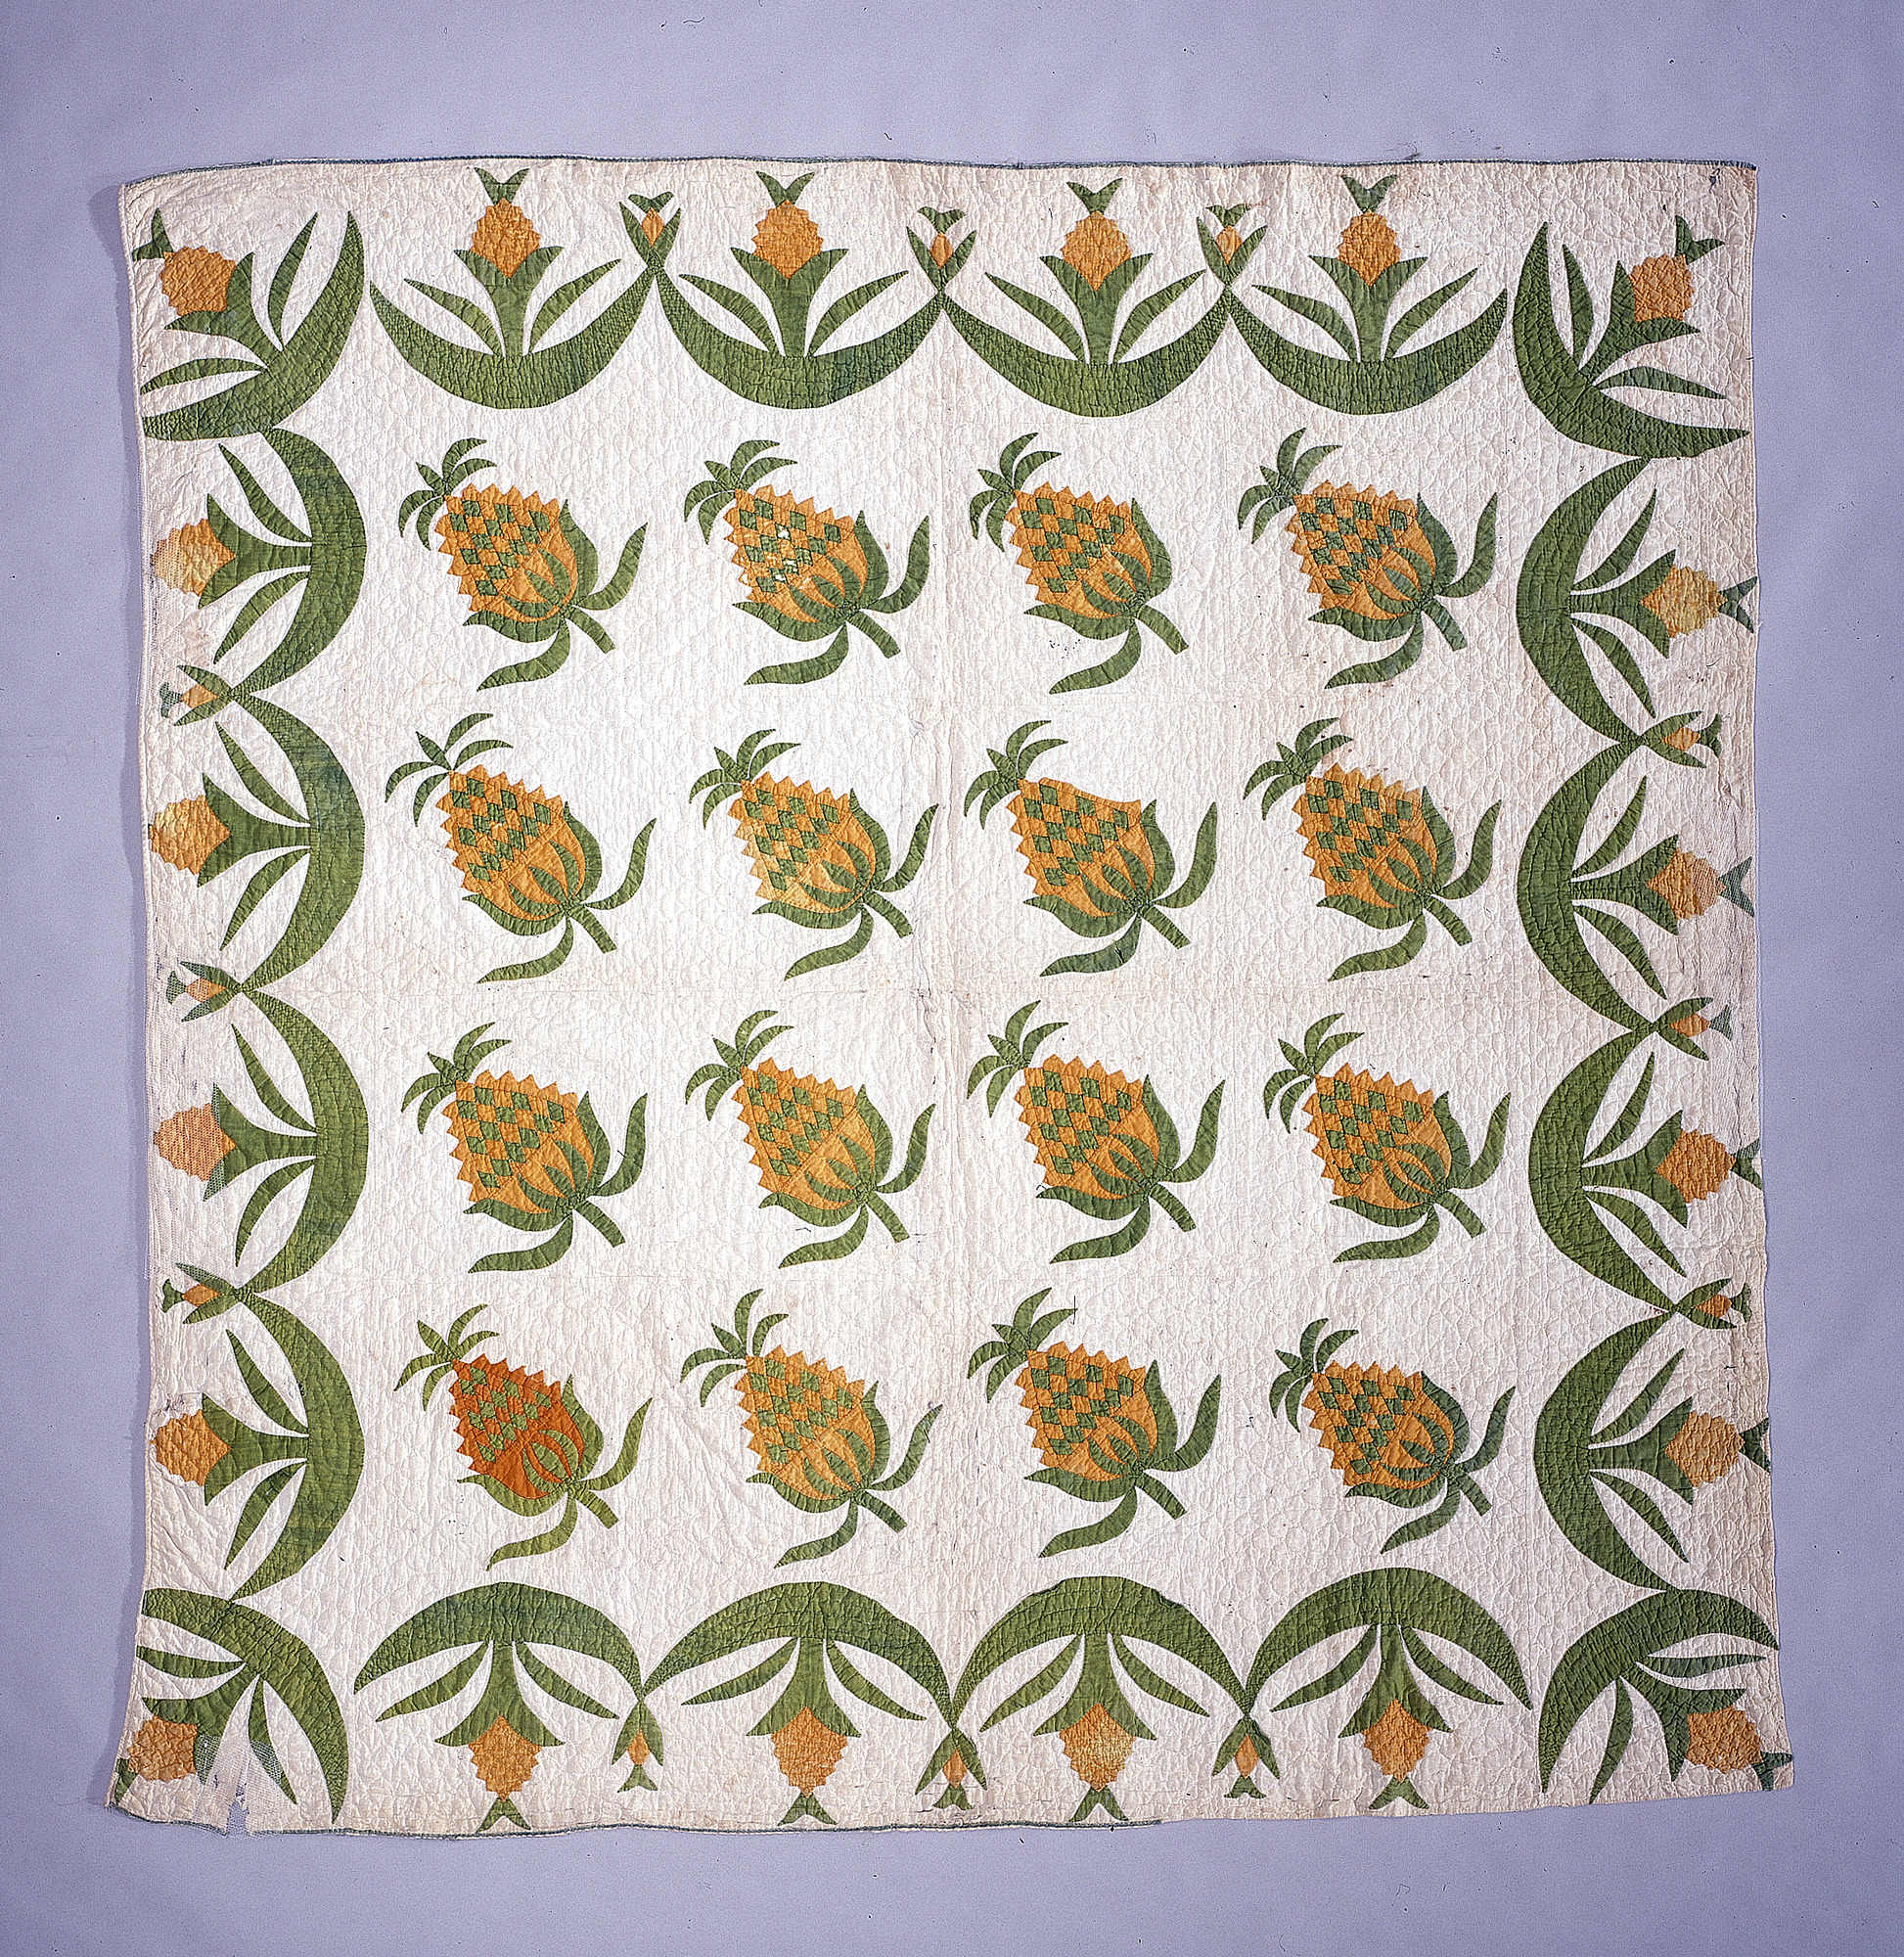 "images for 1840 - 1860 ""Pineapple"" Quilt"